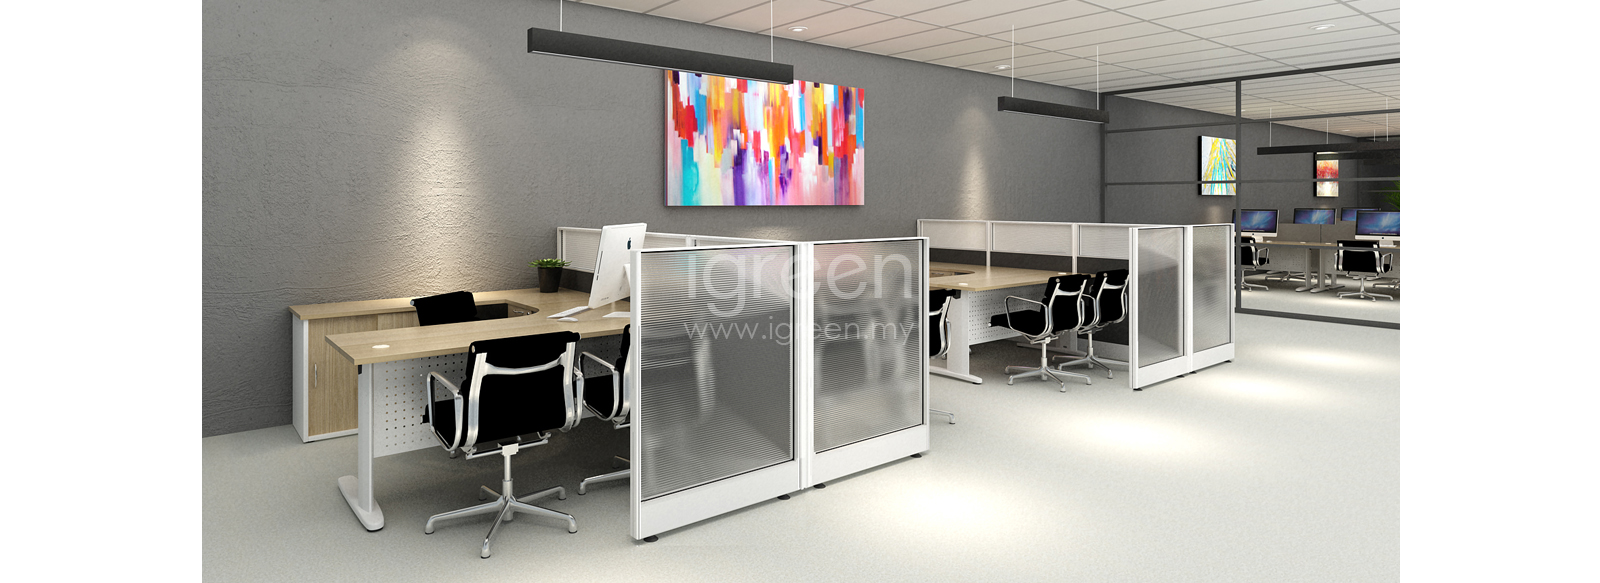 Pentagon Modern Private Workstation Divider Concept Malaysia